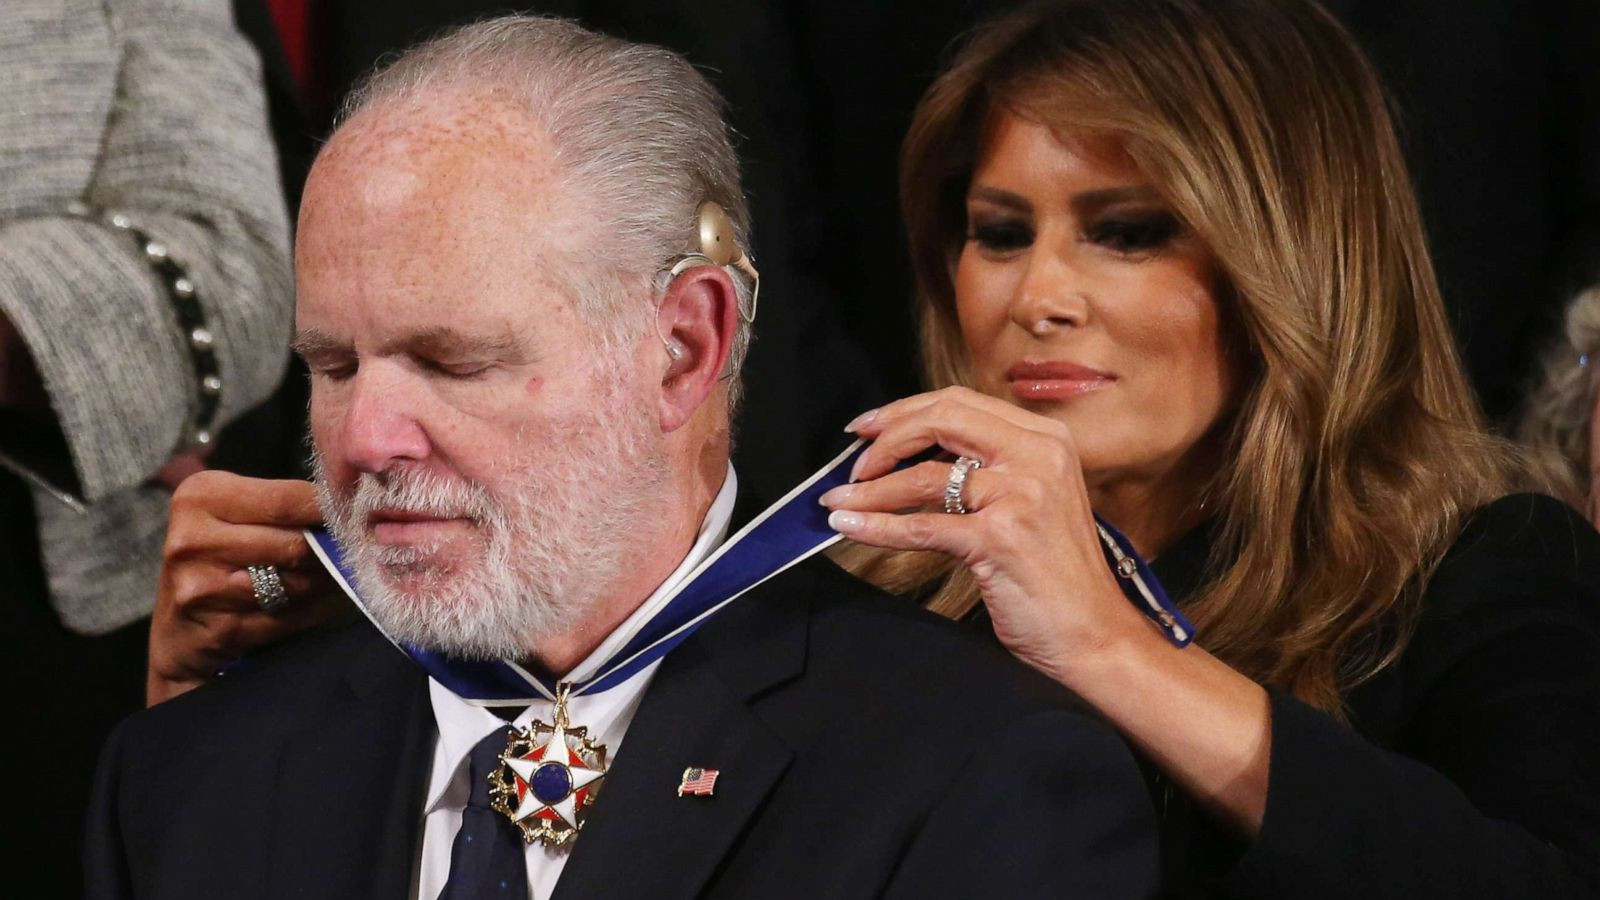 Conservative talk radio pioneer, Rush Limbaugh dies of lung cancer at age 70